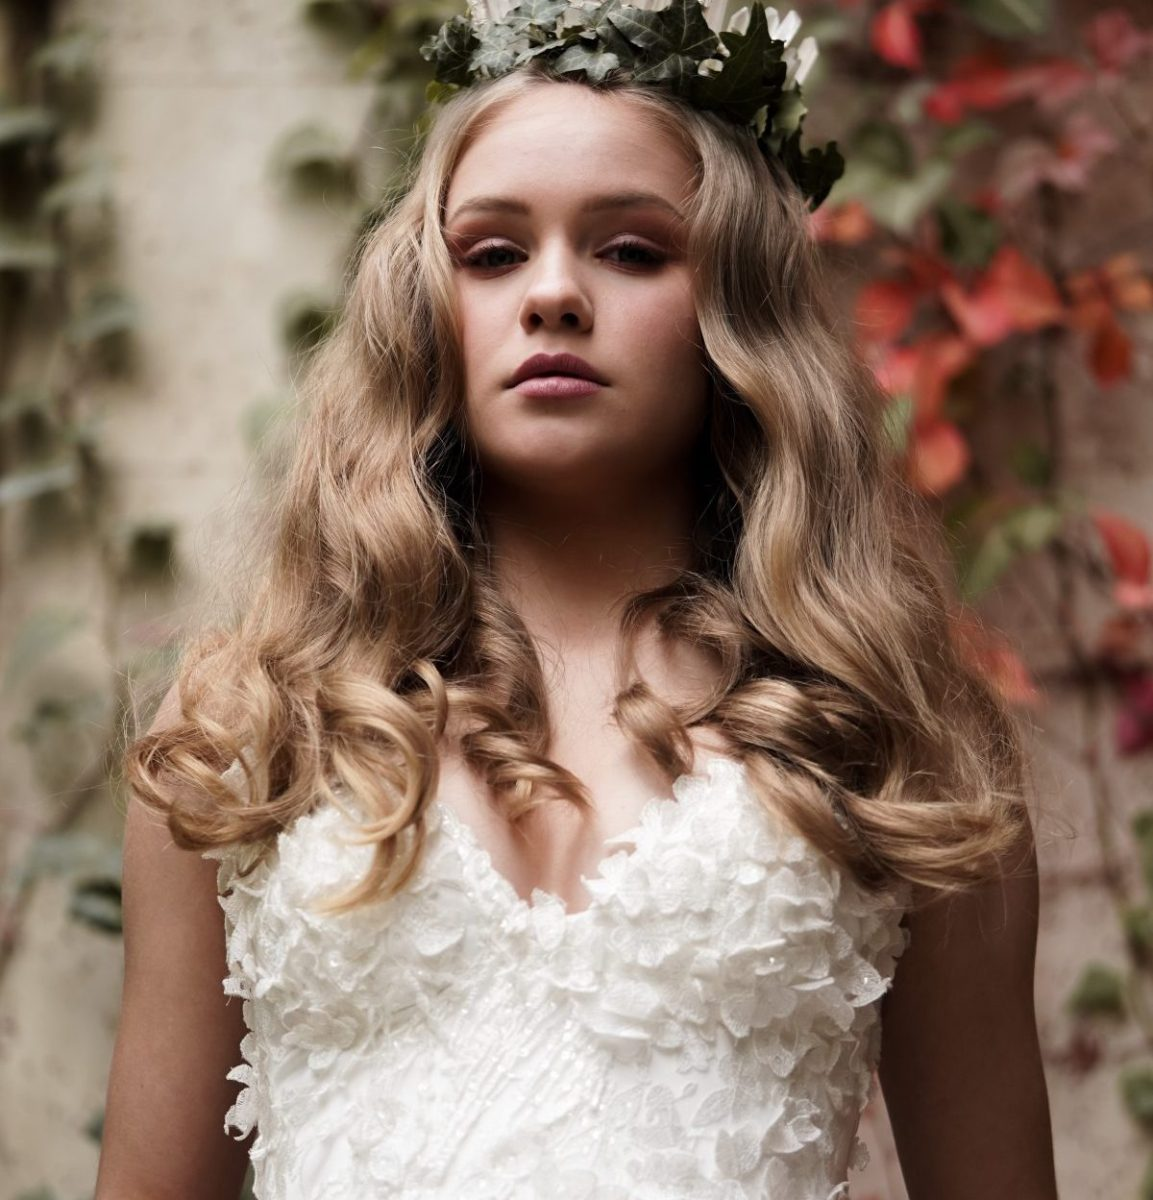 Couture Wedding Gowns Melbourne: Couture & Wedding Dresses Melbourne